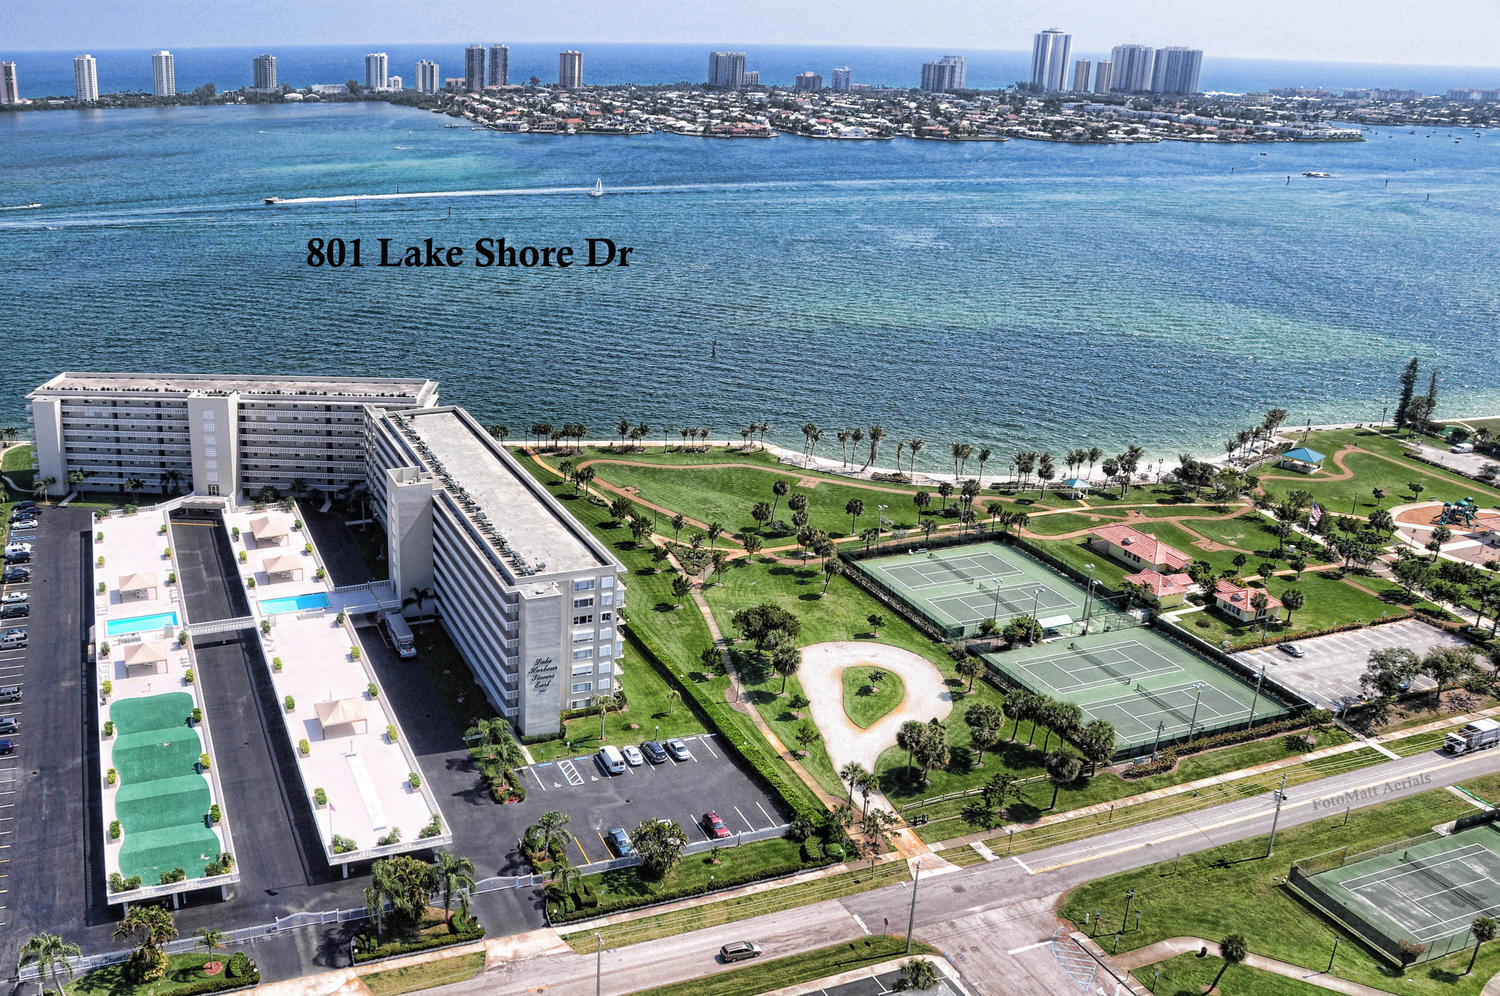 801 Lake Shore Dr  Aerial